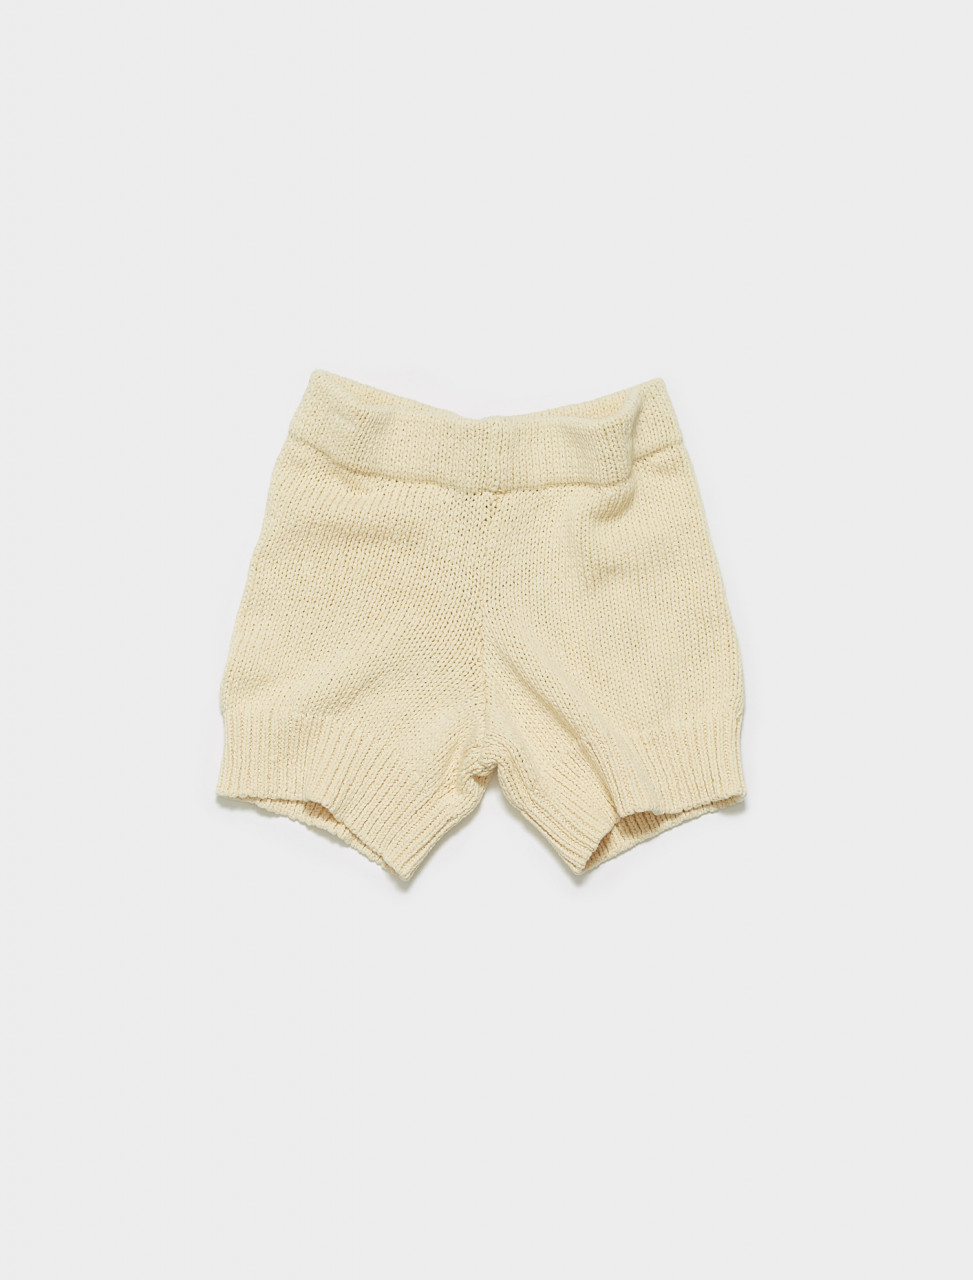 PKM010-620 PALOMA WOOL ZUBAT SHORTS IN ECRU